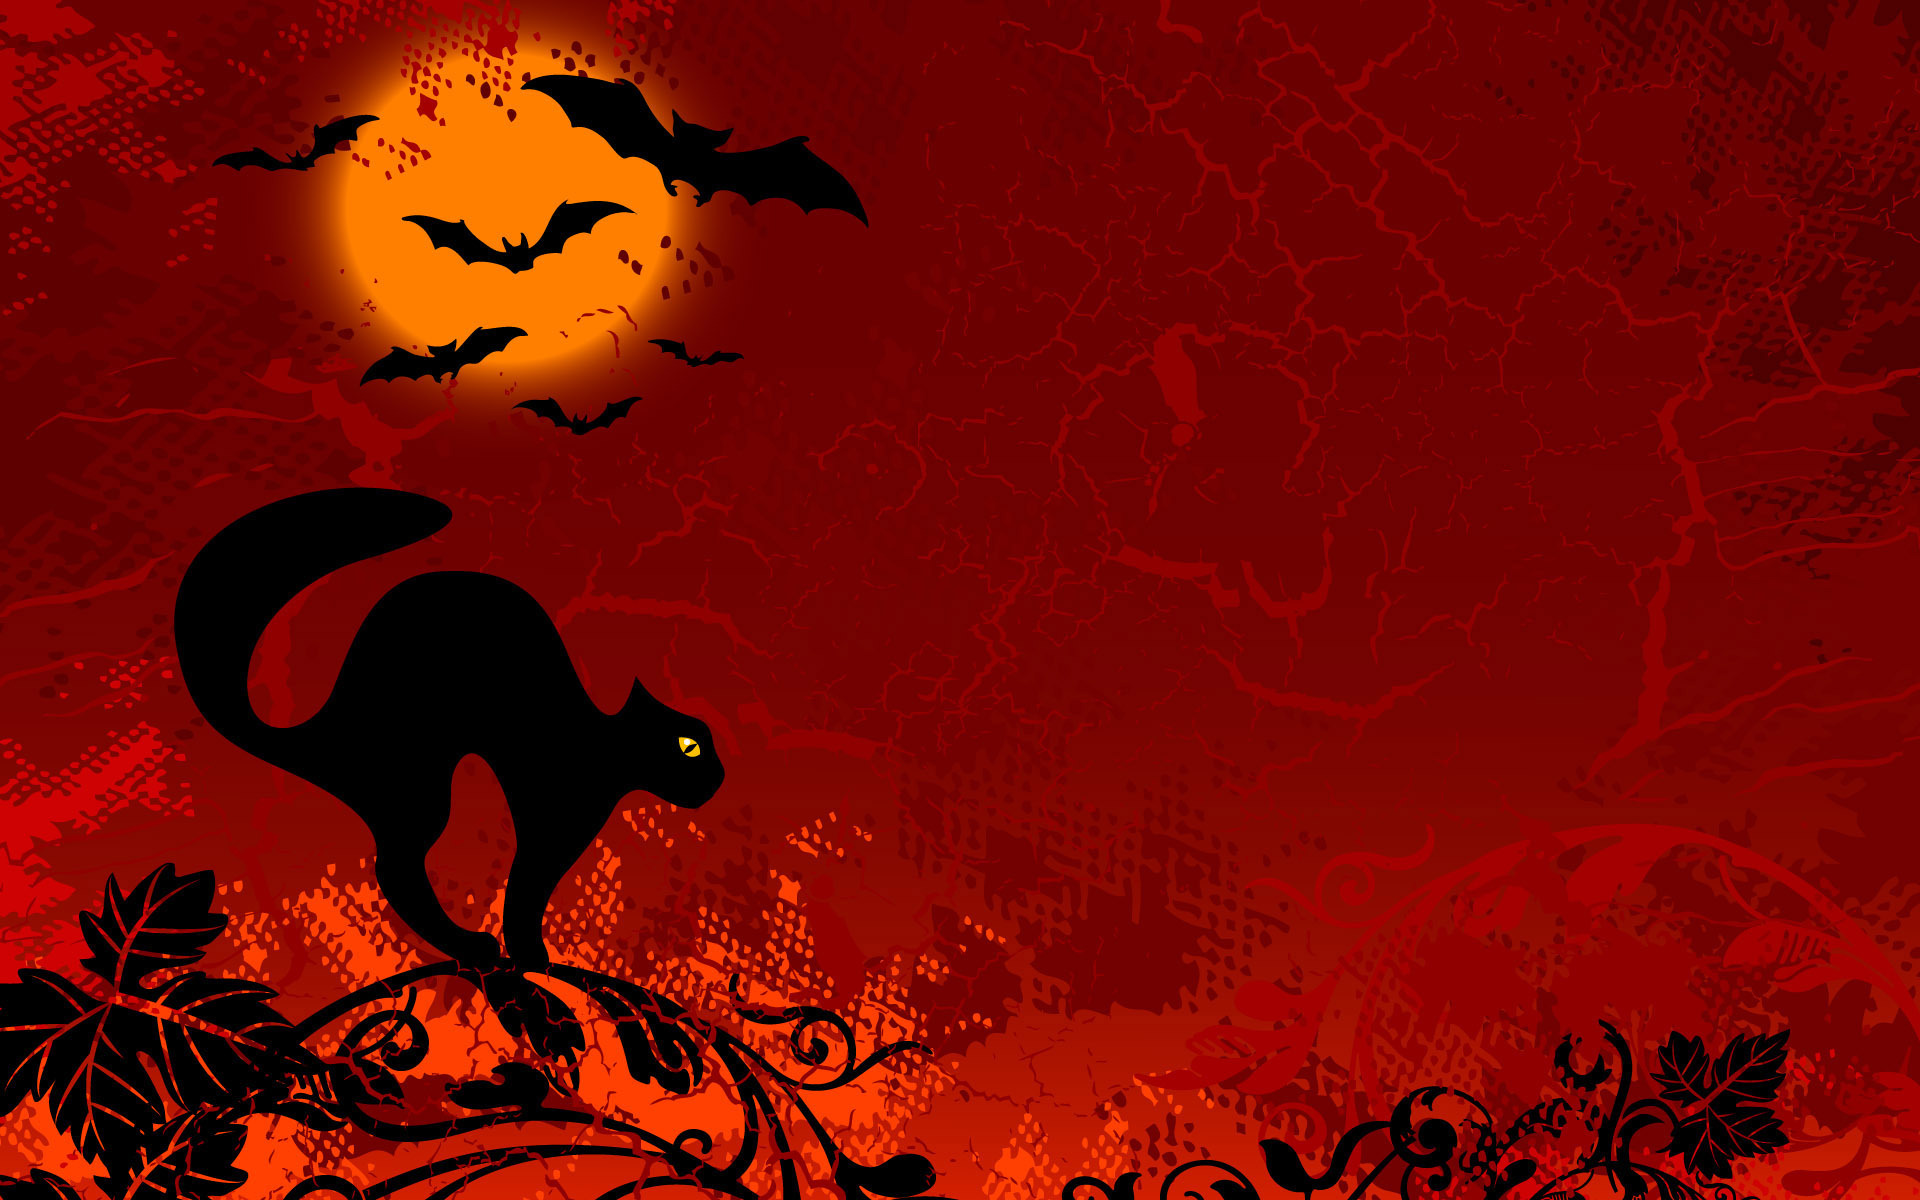 Halloween Aesthetic wallpapers,